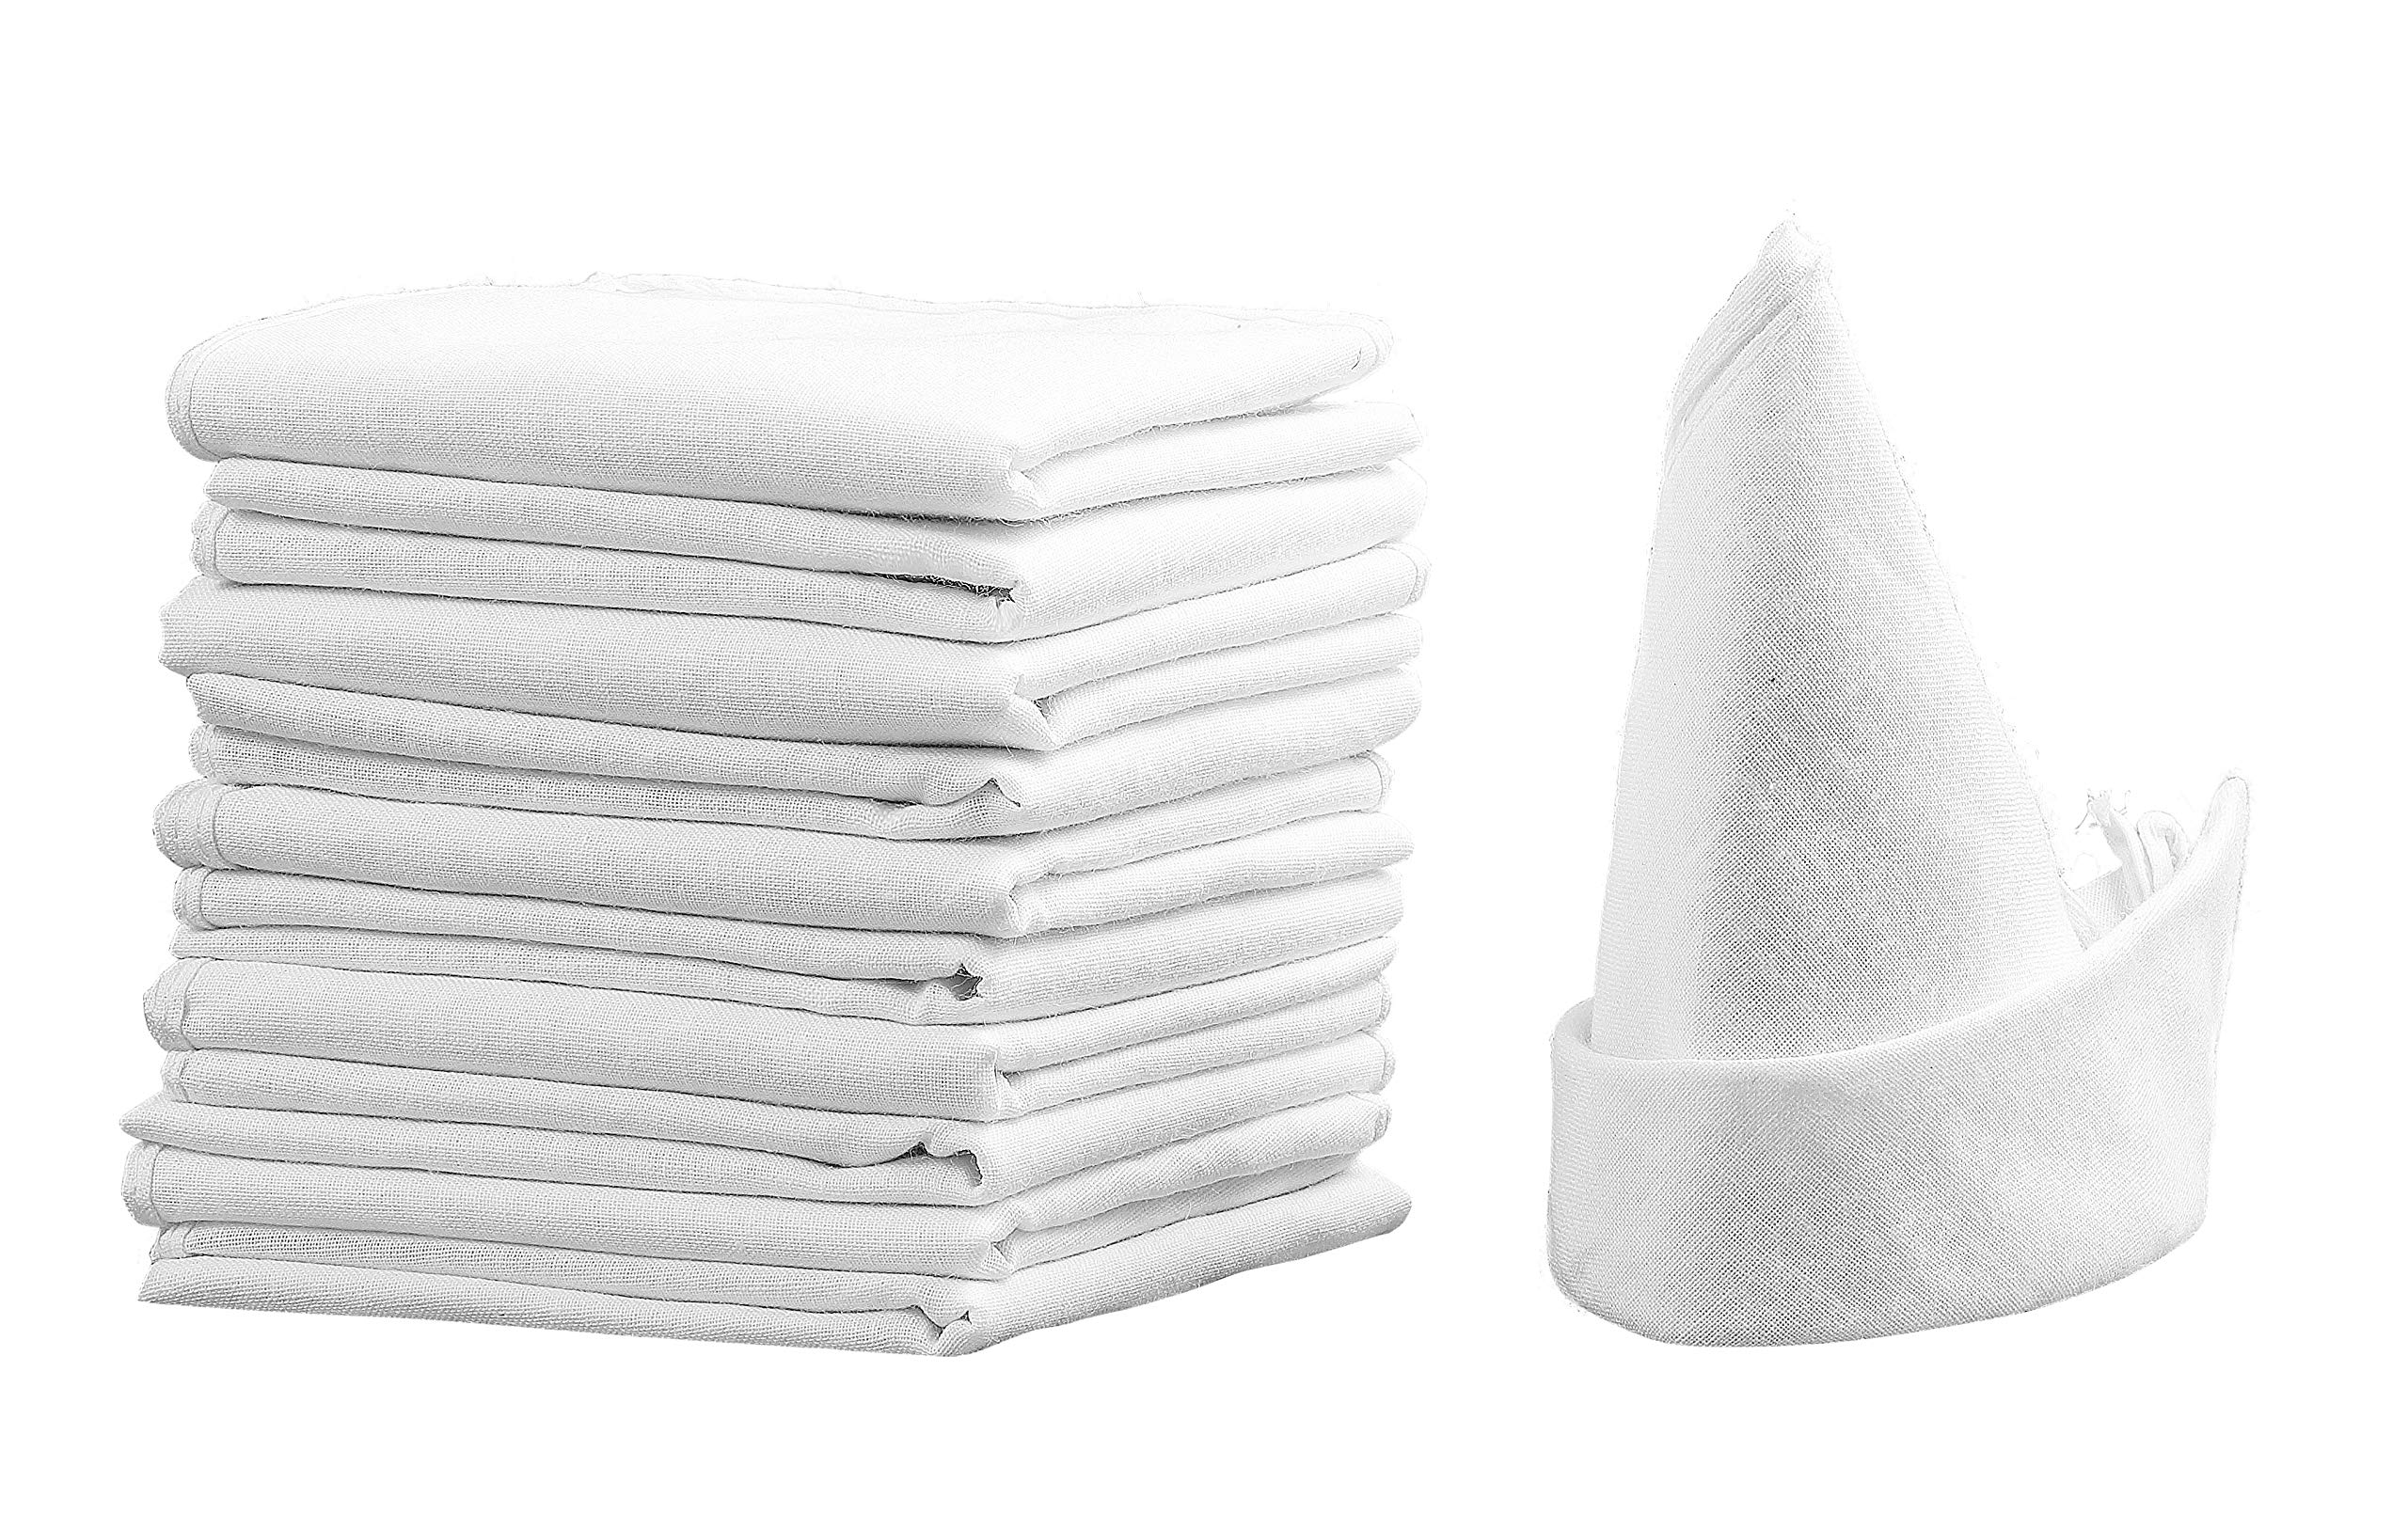 an2 100% Cotton & Pure White Handkerchief – Reusable Hankies Men, Women, Bride, Groom, Wedding (12pc)